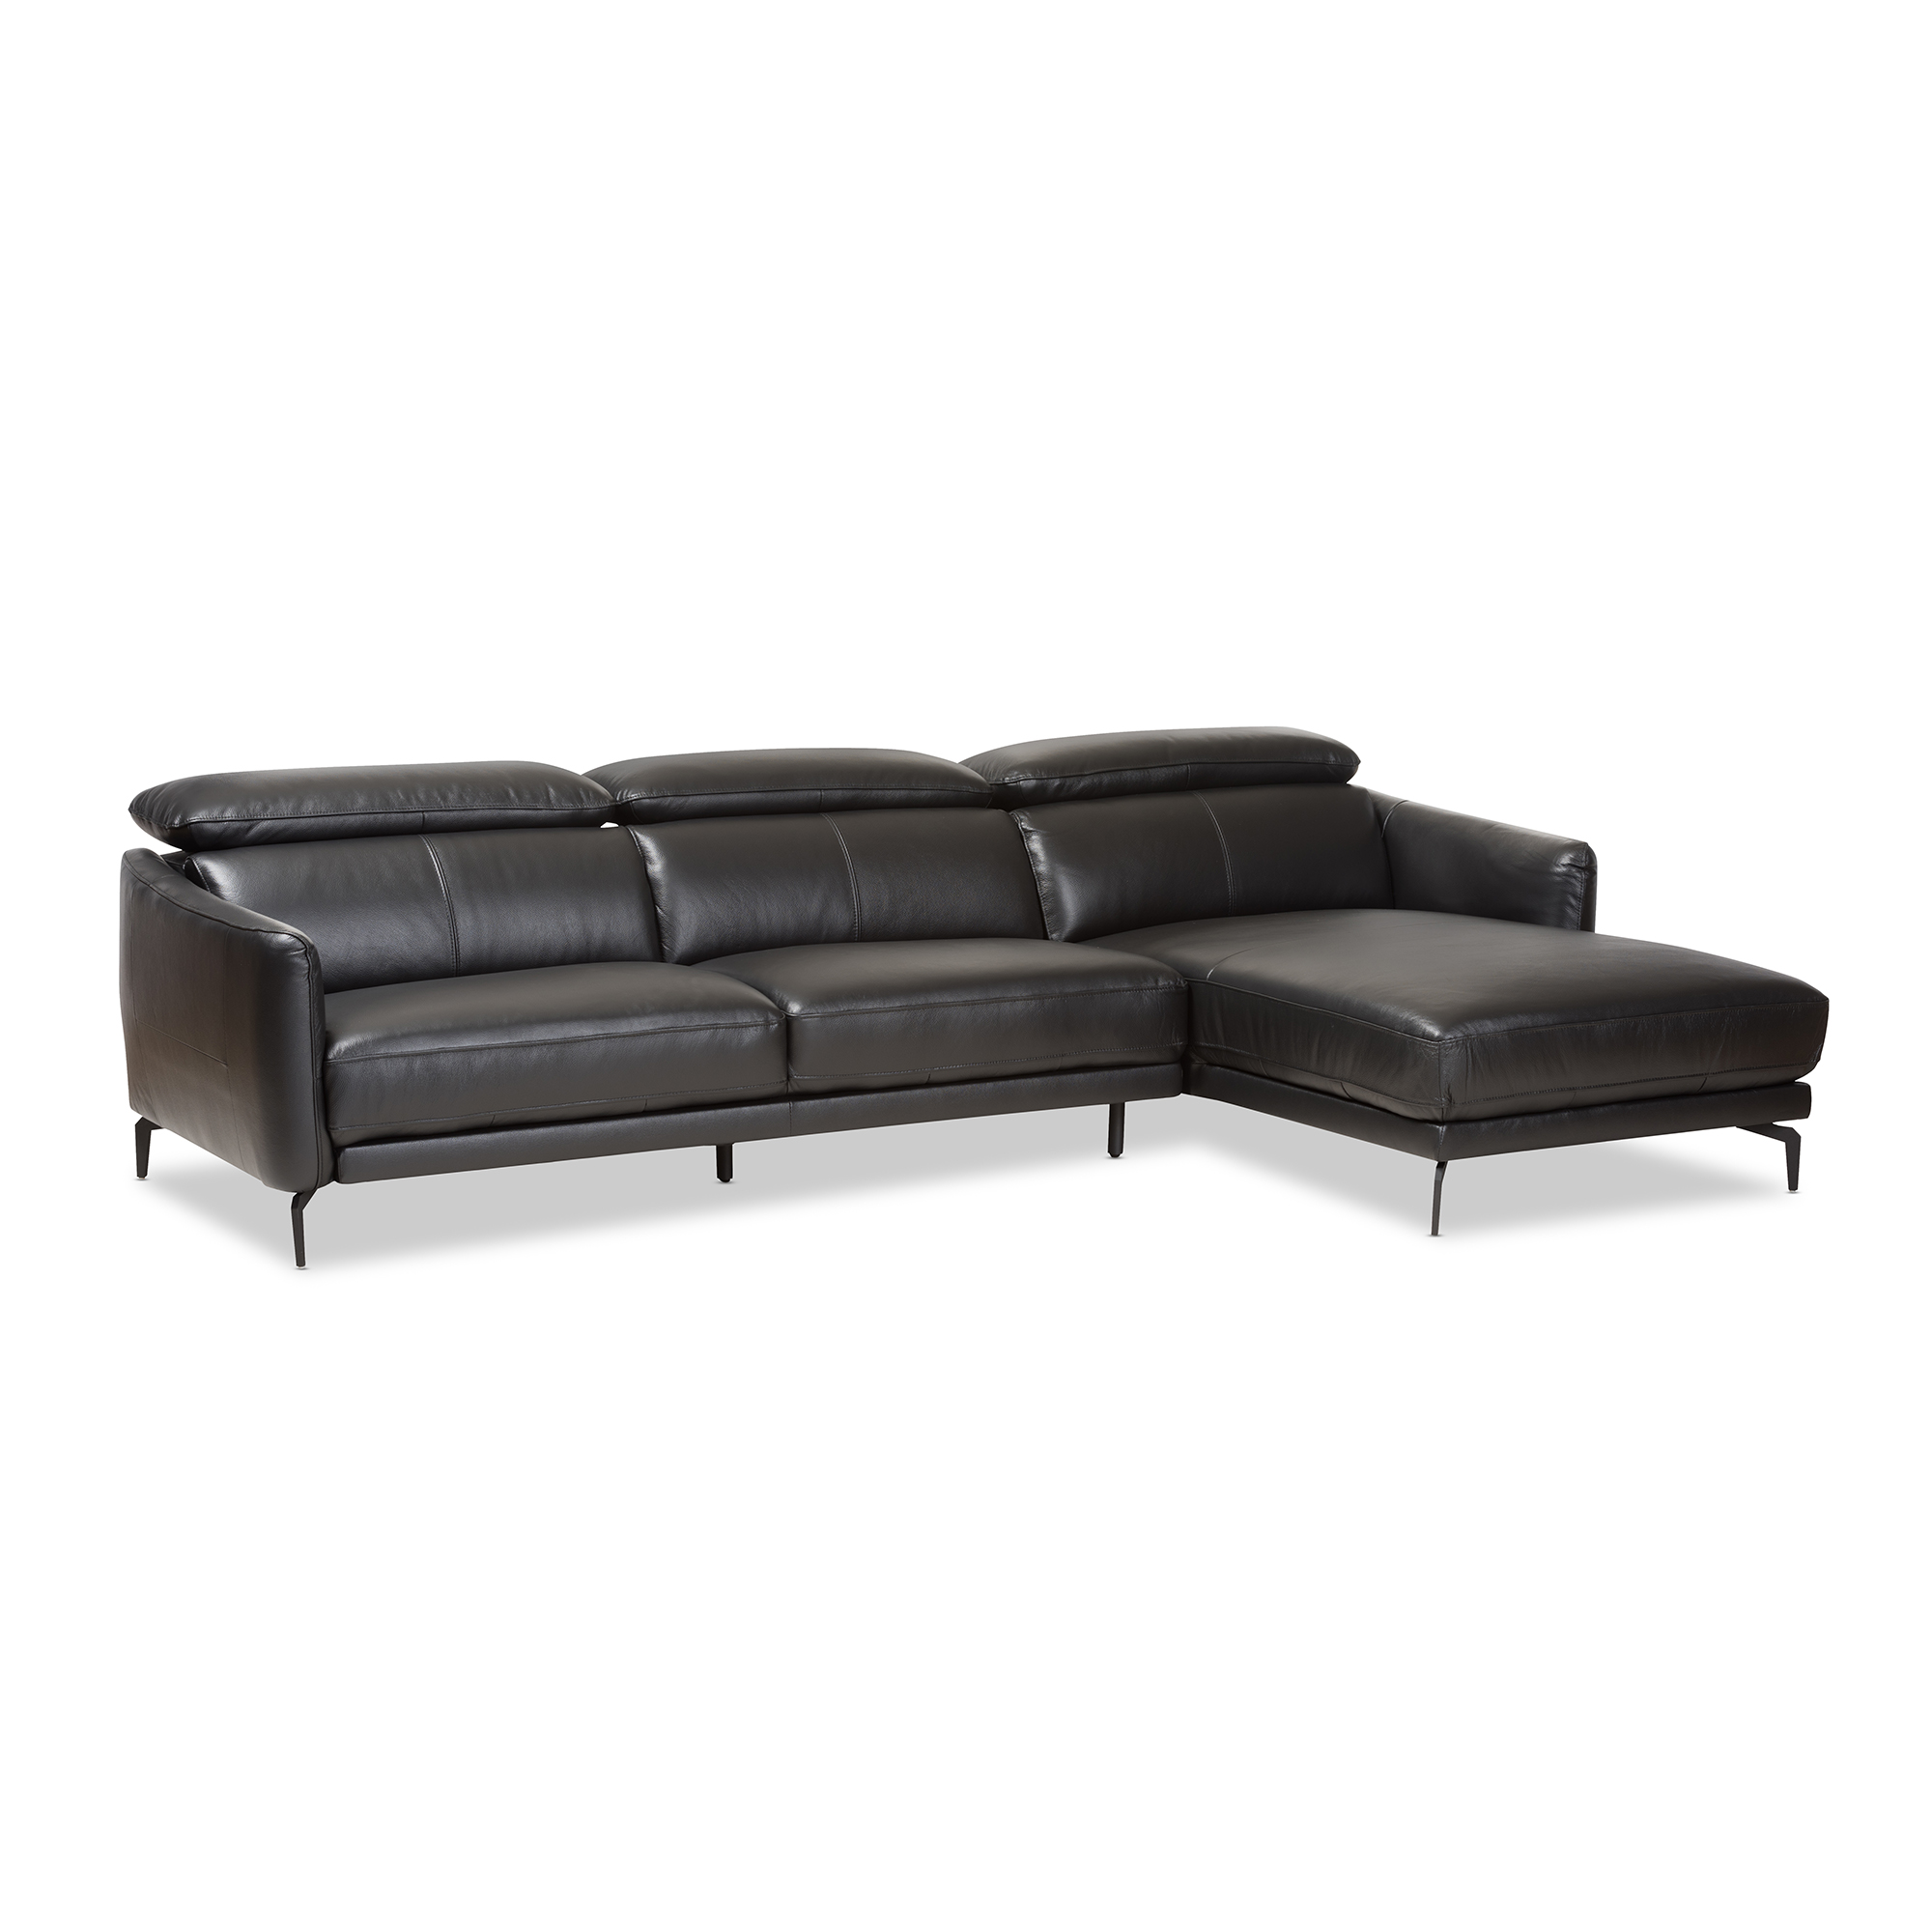 full with lounge side small sofas sectional left size facing hand right leather furniture of chaise corner sofa